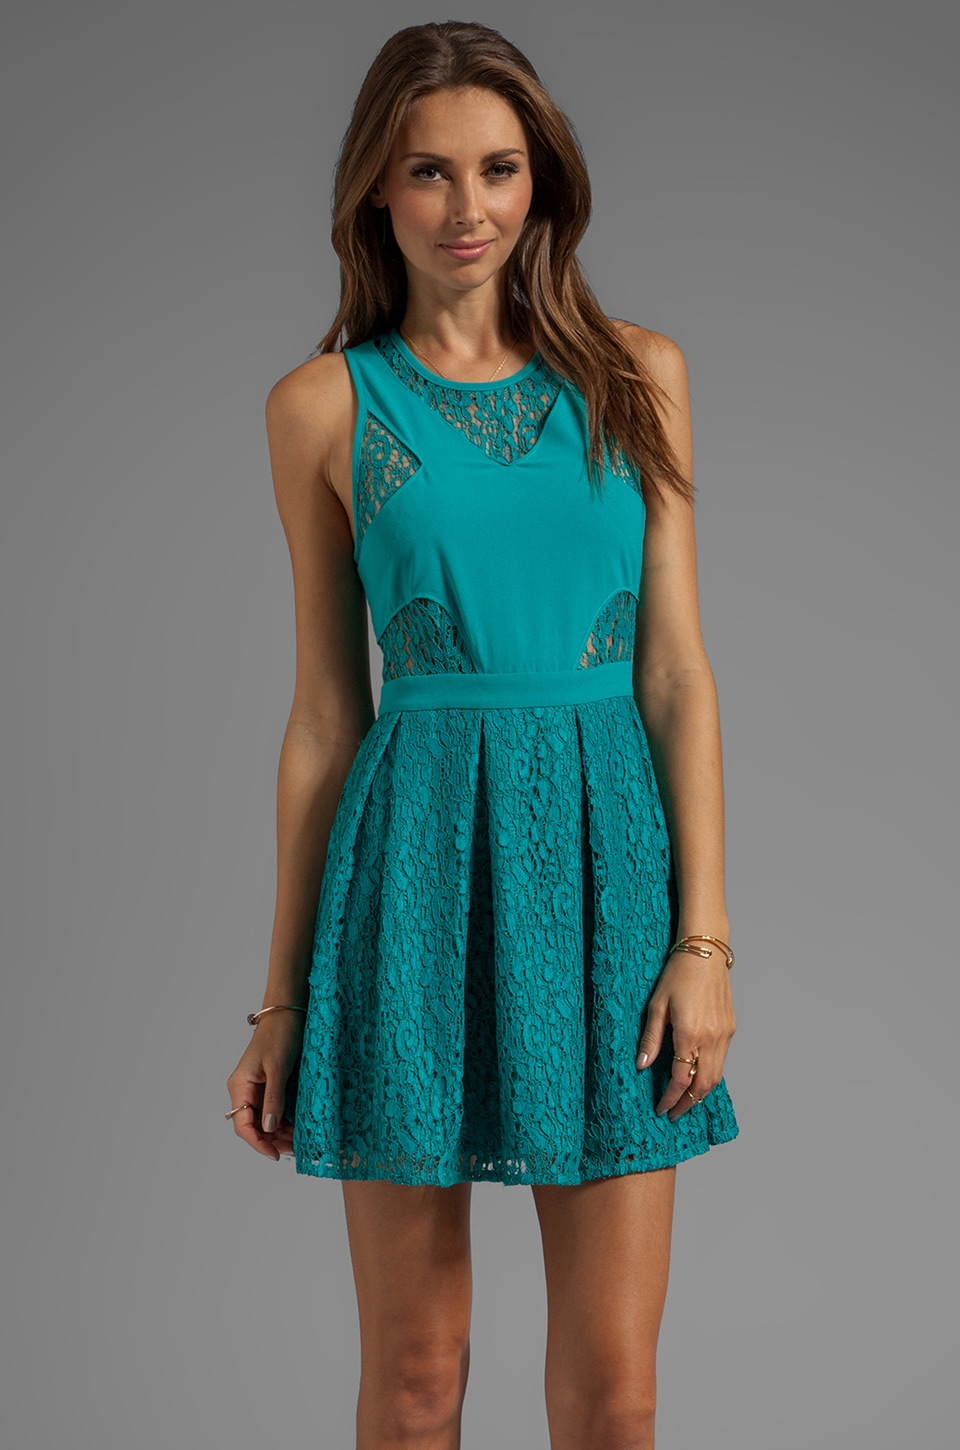 STYLESTALKER B-Ball Lace Dress in Teal